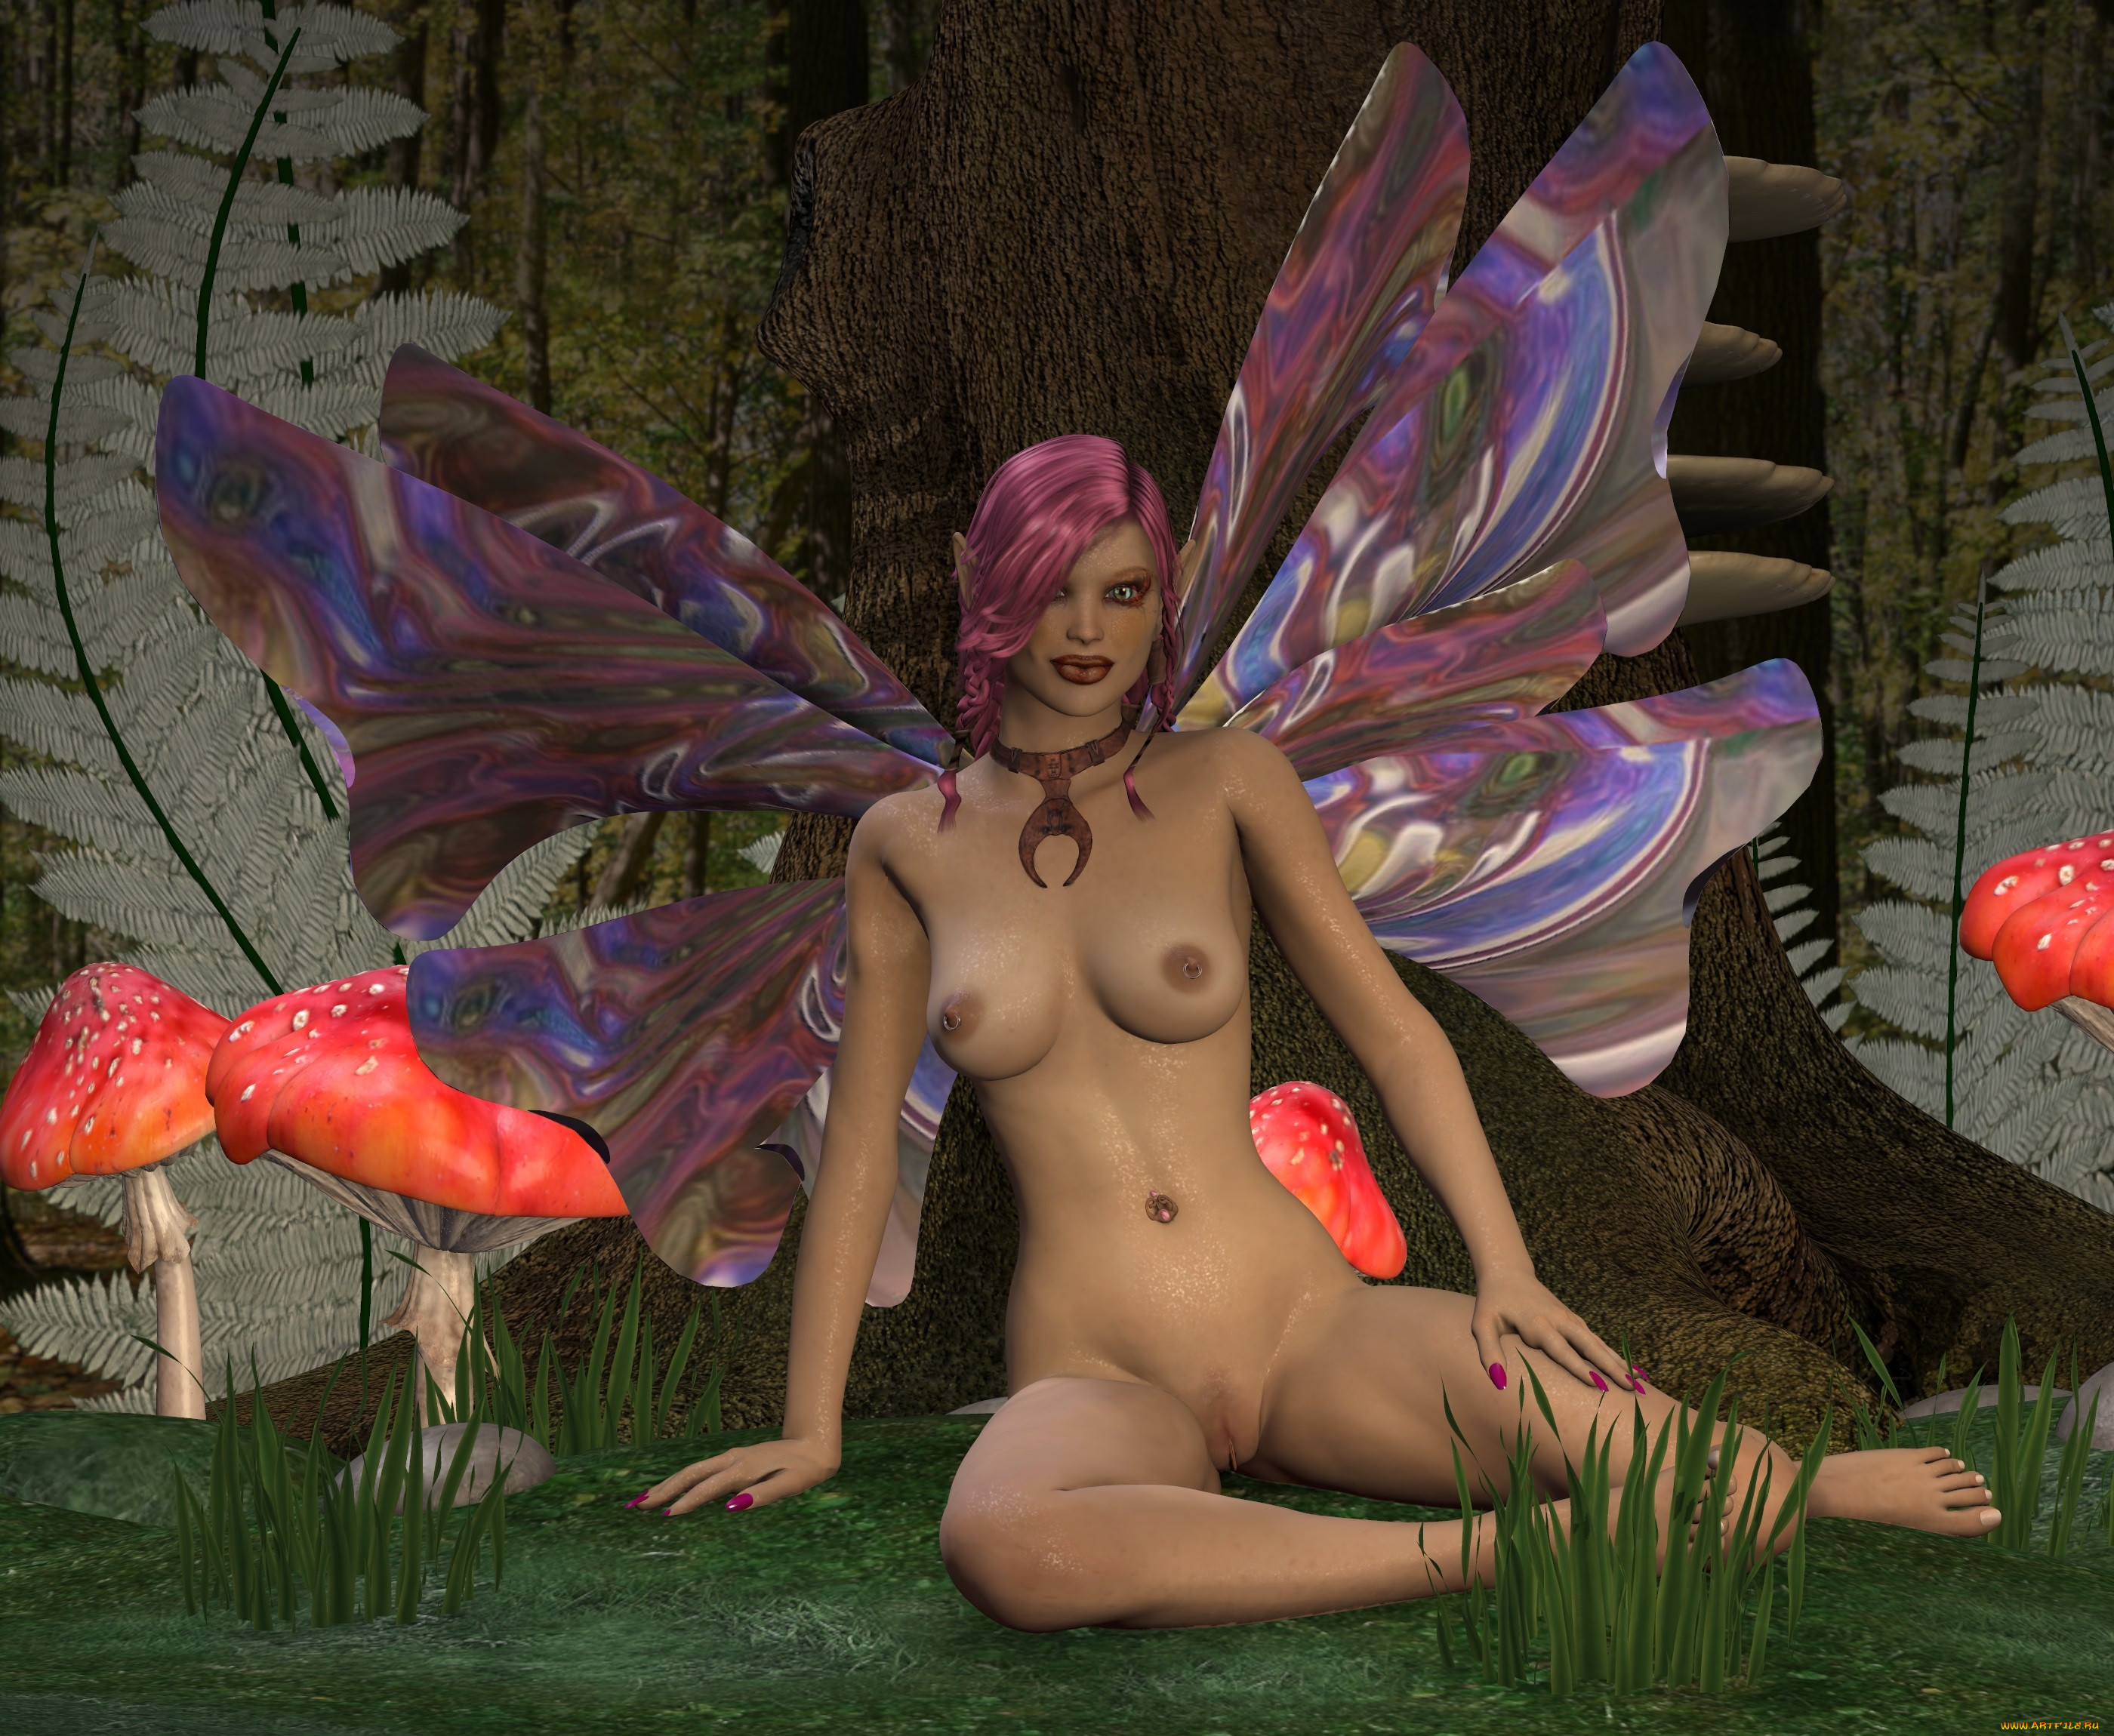 Gif pictures free nude fairies, as red as nude veronica zemanova